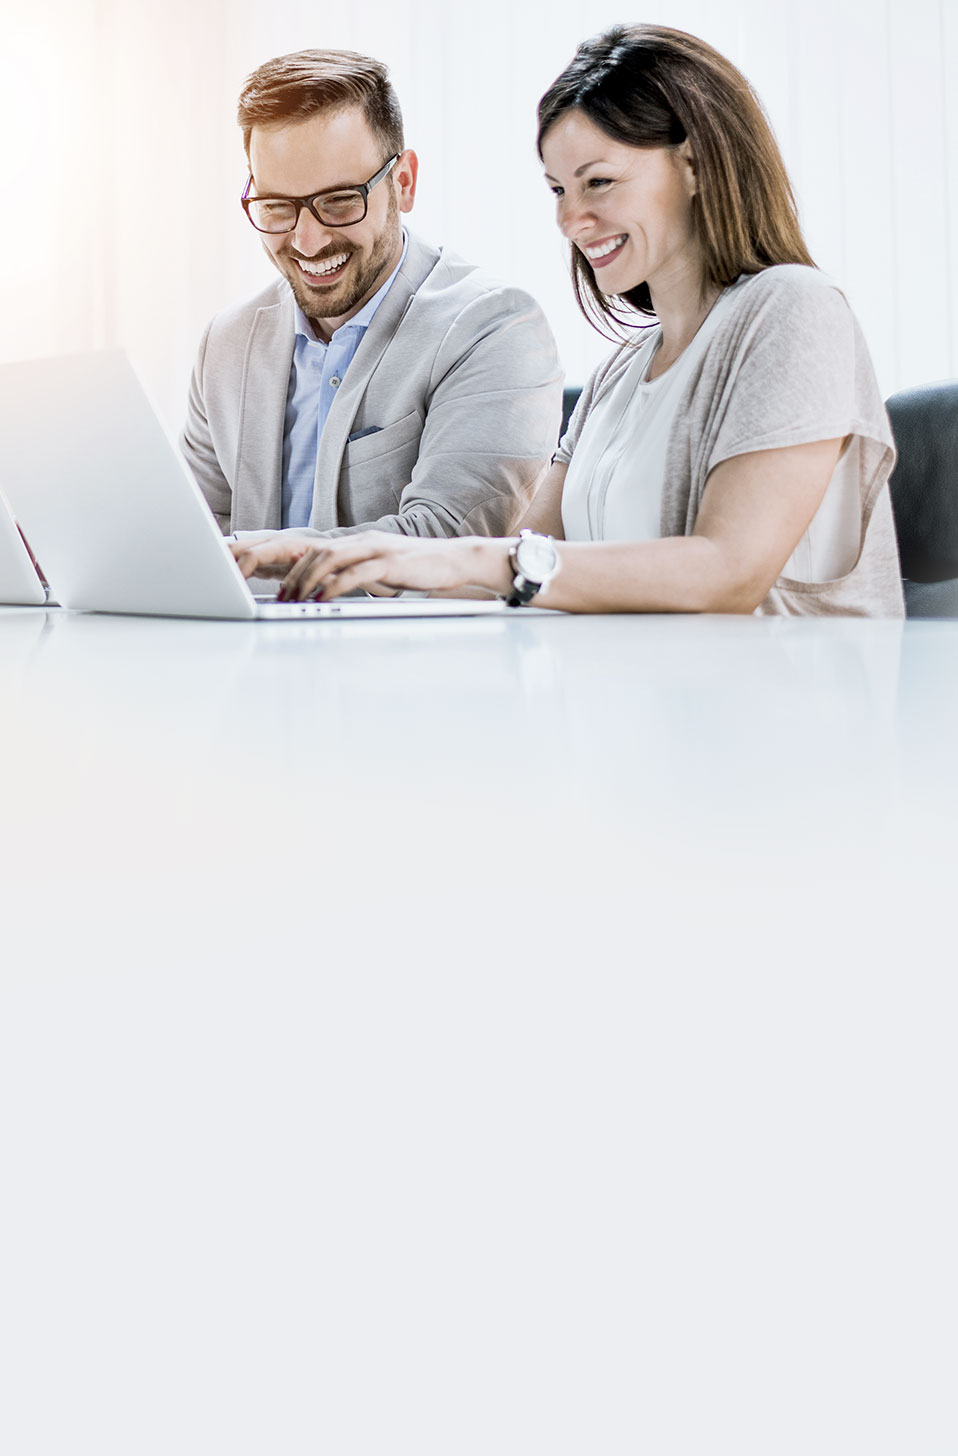 Two people enjoying working together